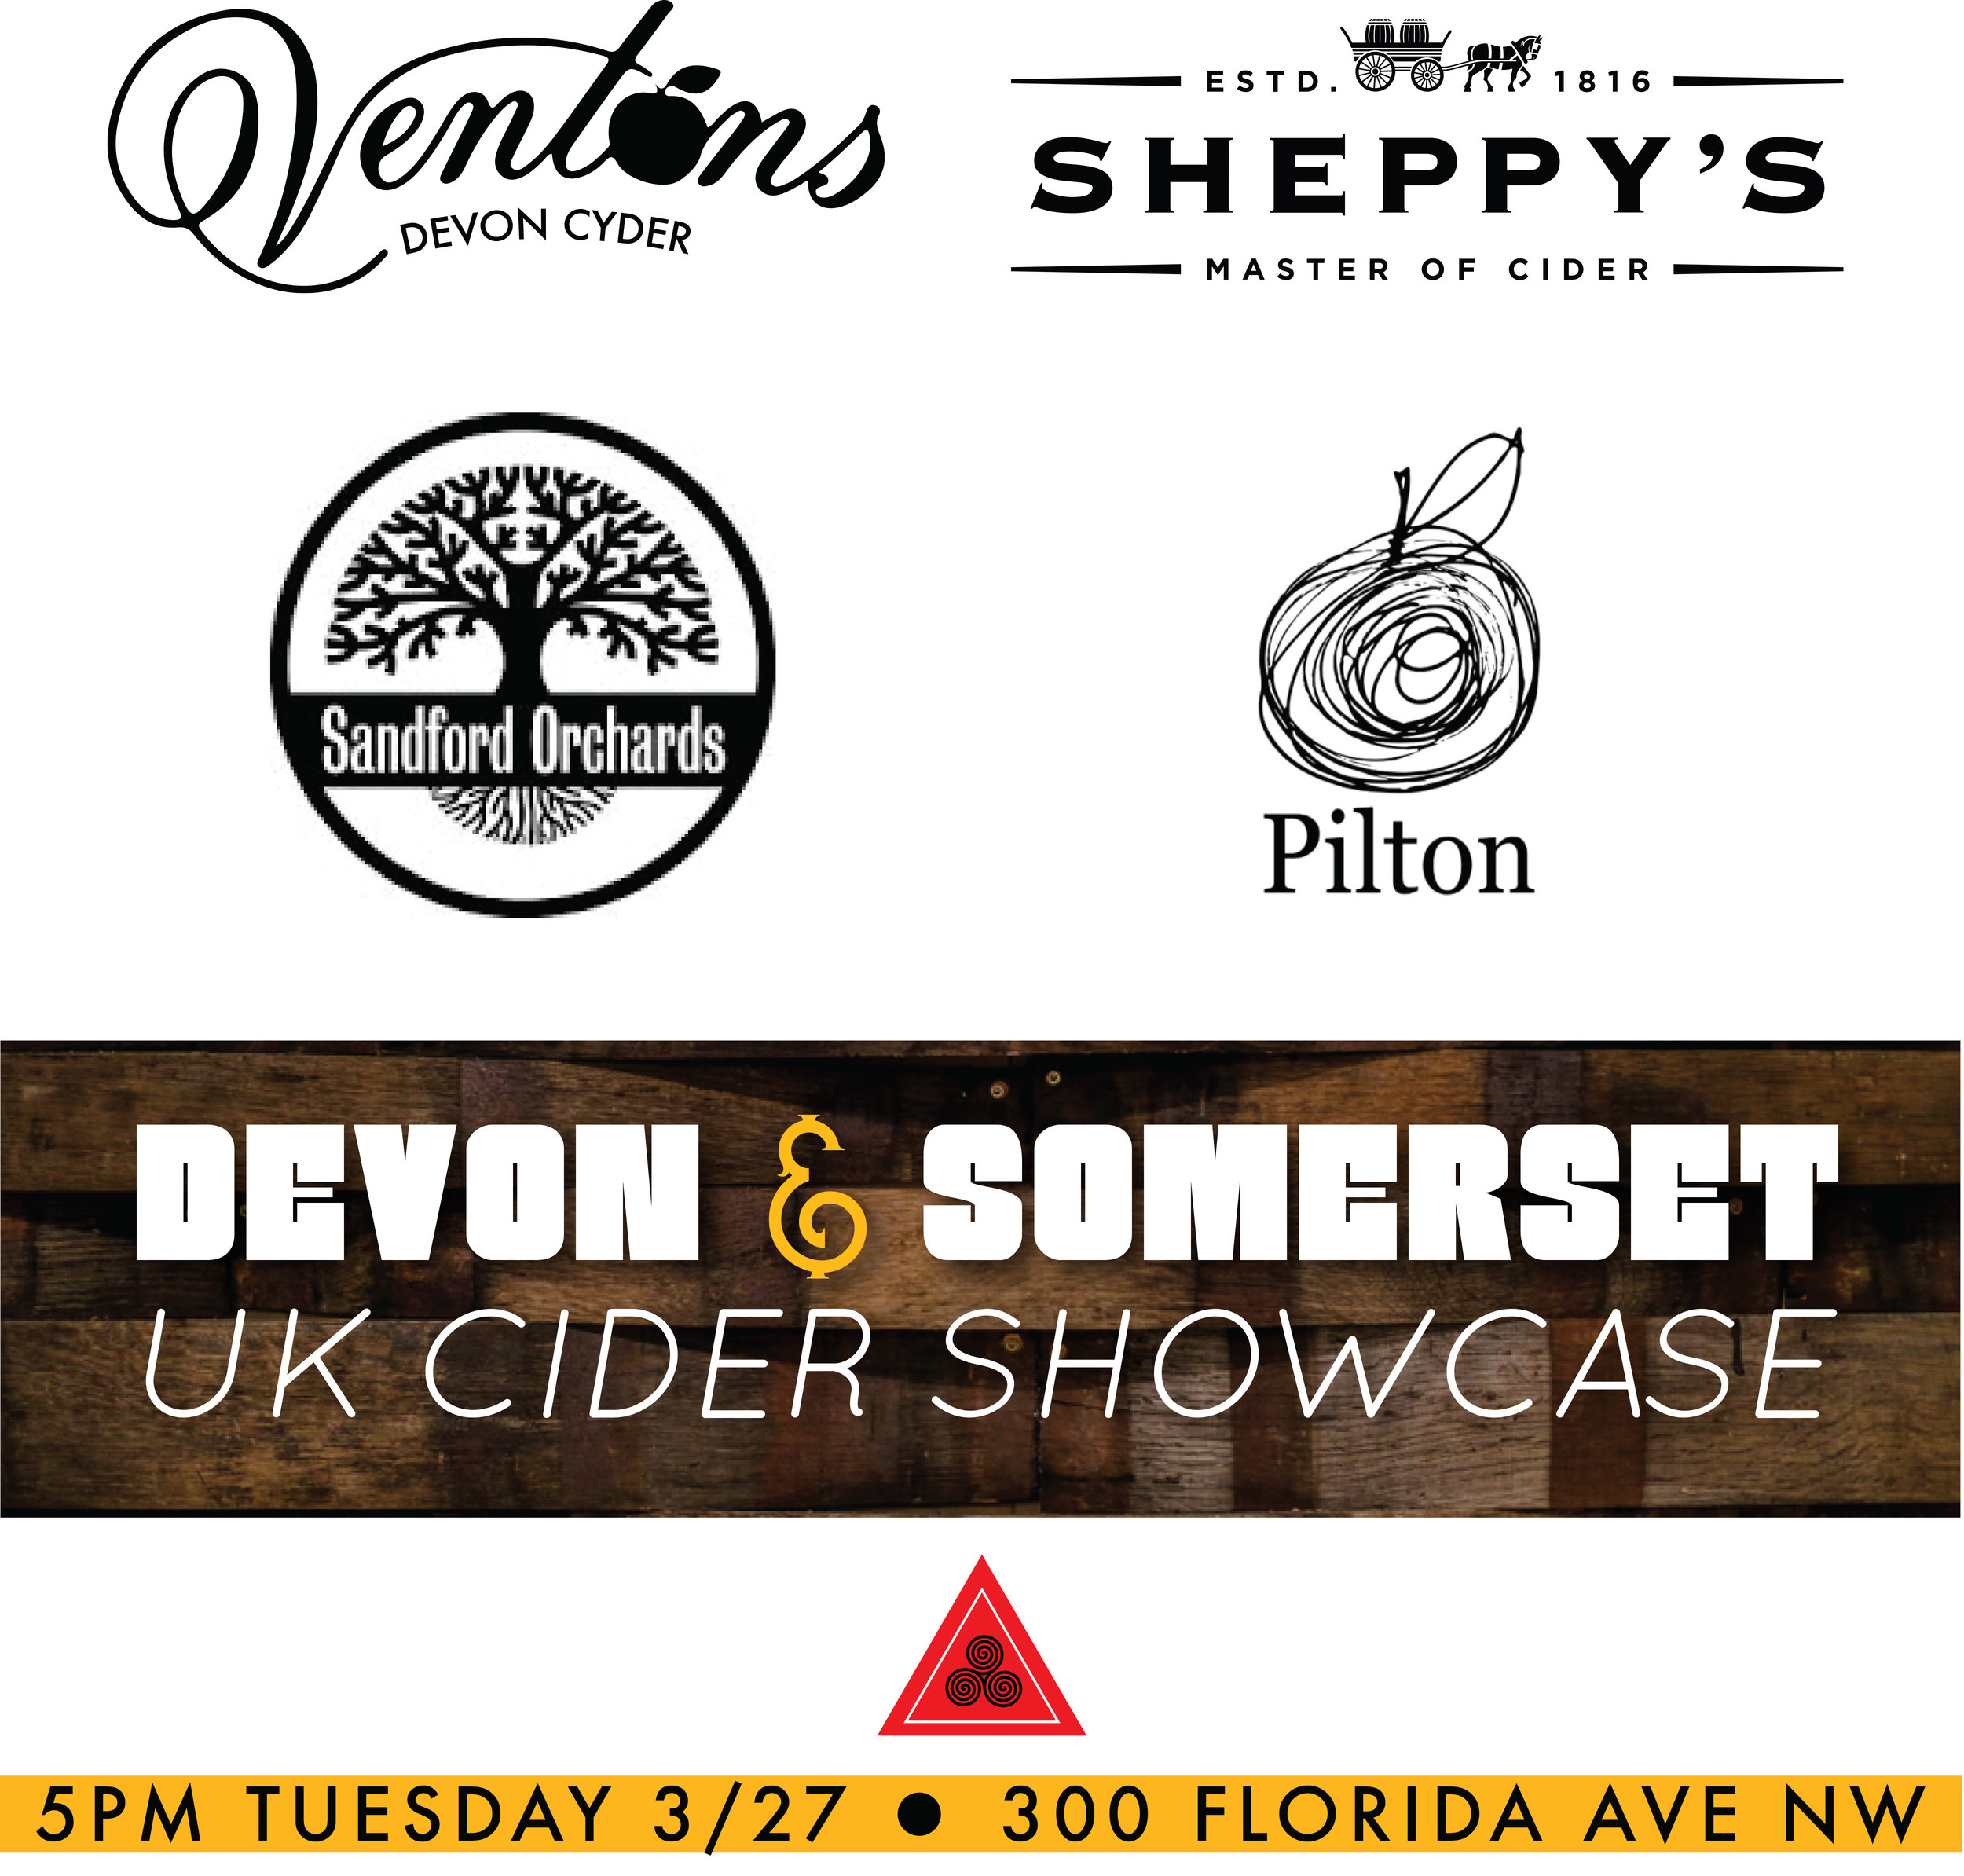 7 awesome ciders including 5 on draught and 2 in Bag-in-box, featuring 4 of the best producers from England's West Country.  Also featuring 1 collaborative offering from Dan Kopman(Heavy Seas) and Barney Butterfield of Sandford Orchard's new brand, E.Krisper's Hard Cider.  Come out and hang!